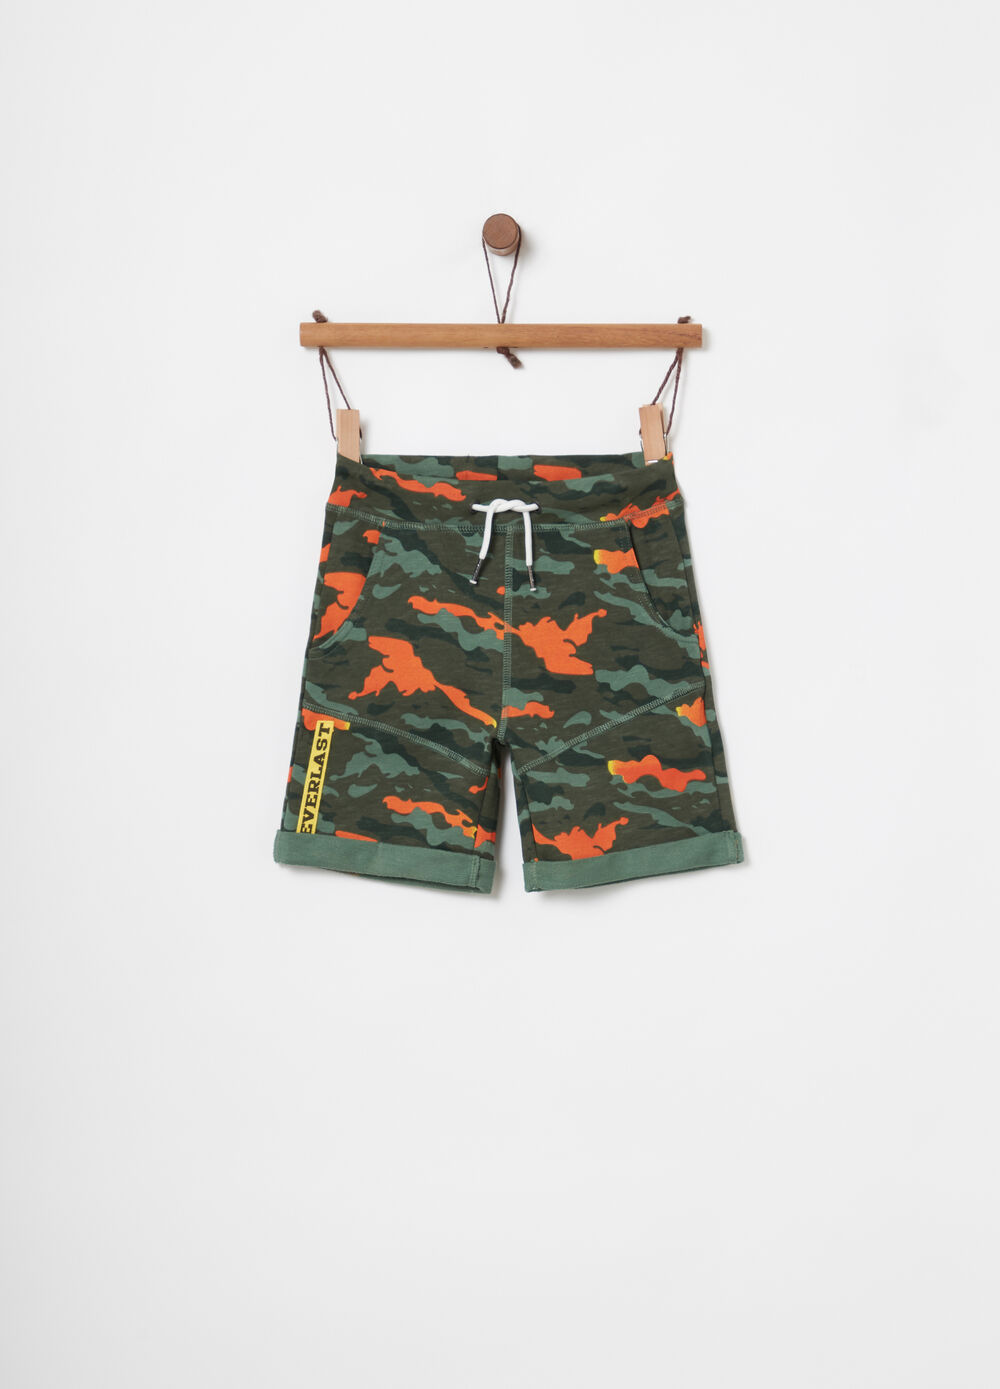 Lightweight fleece shorts with camouflage pockets